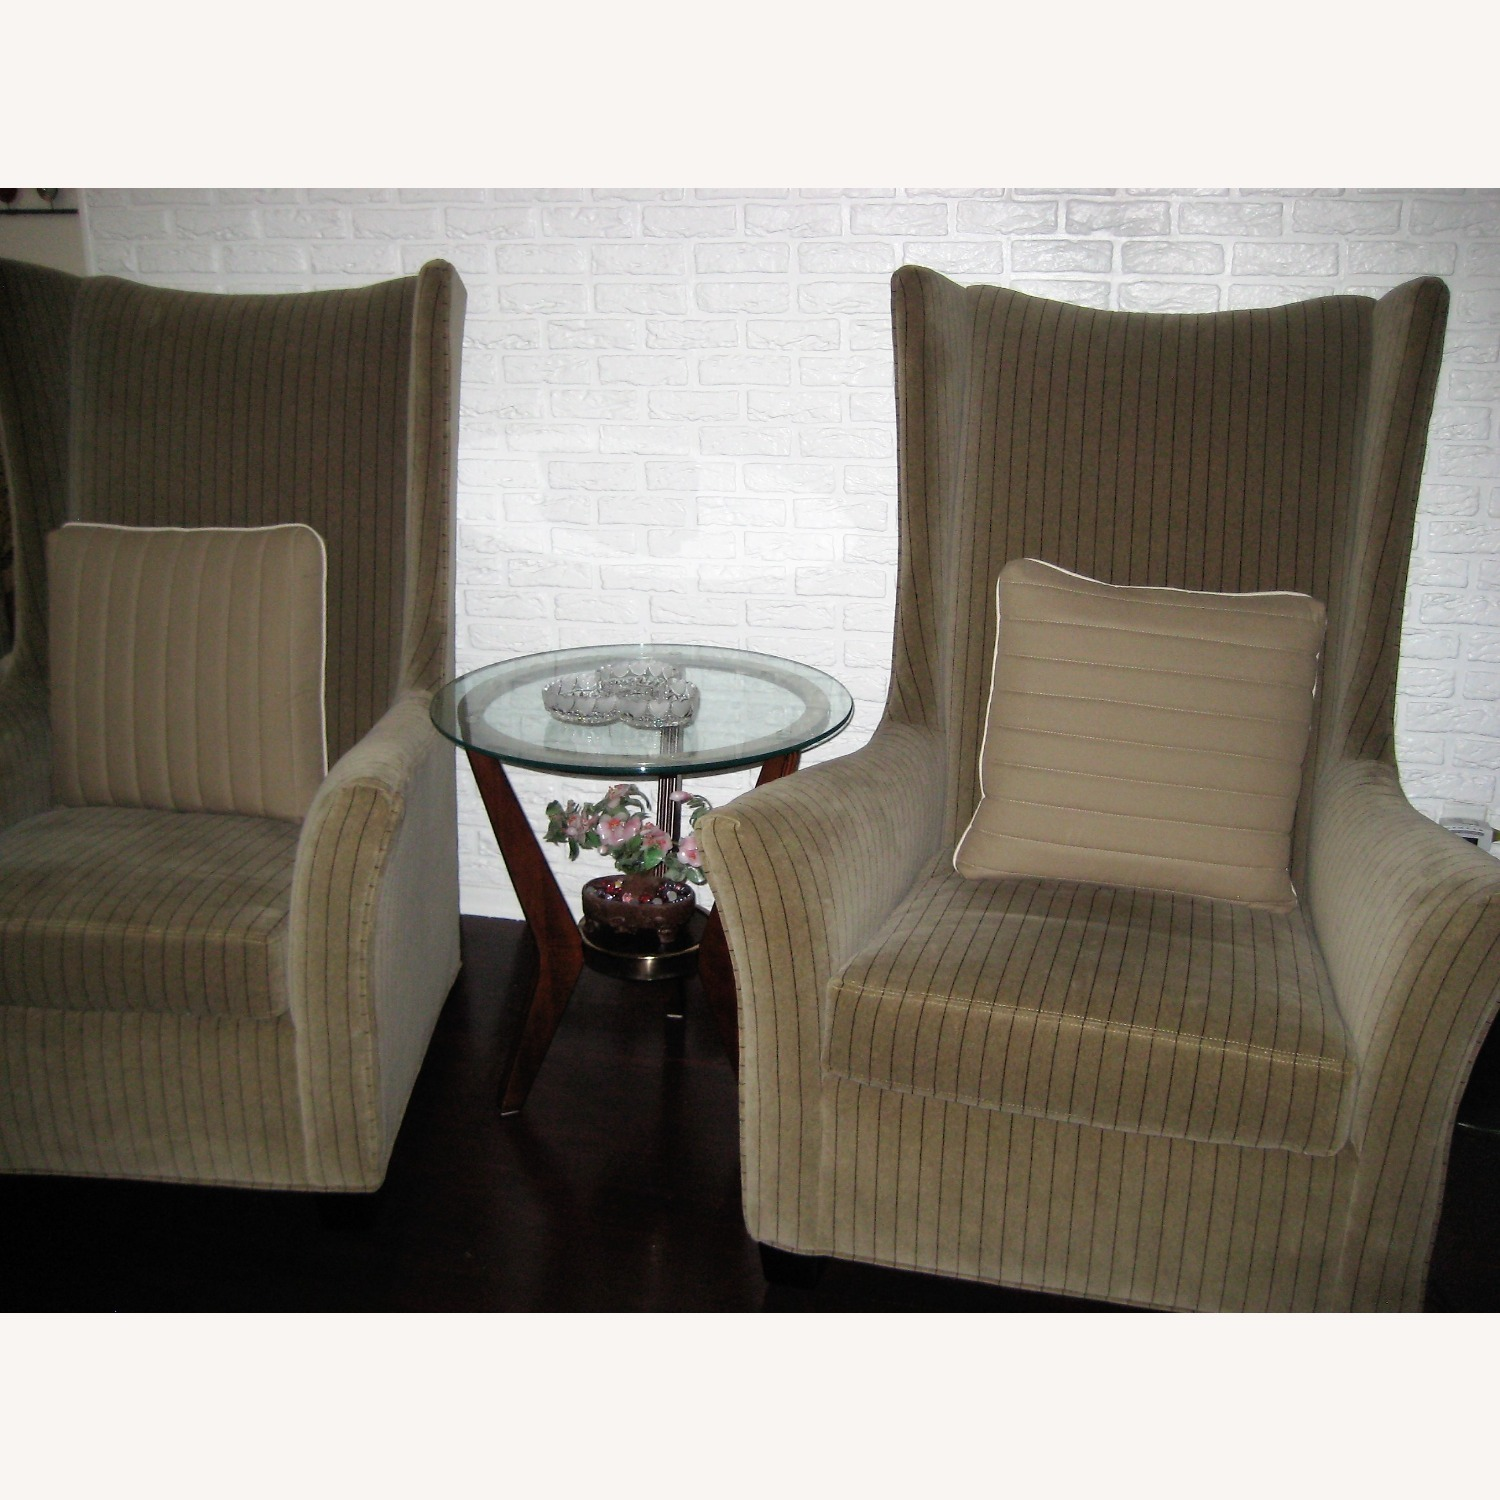 CR Laine 2 Chairs - image-1